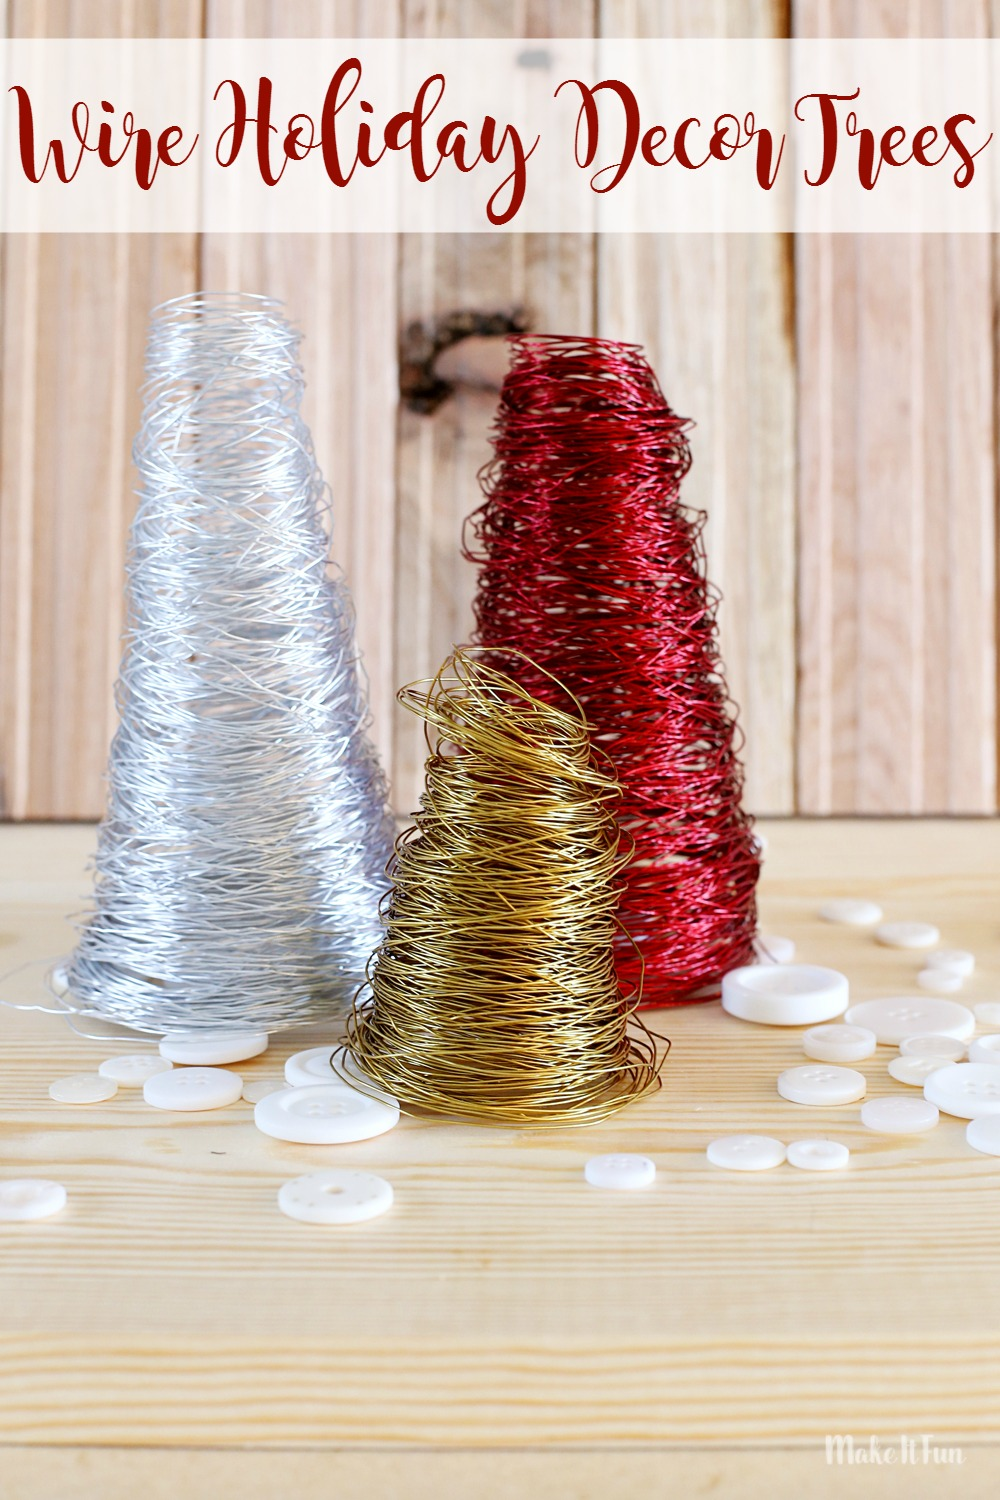 wire-holiday-decor-trees